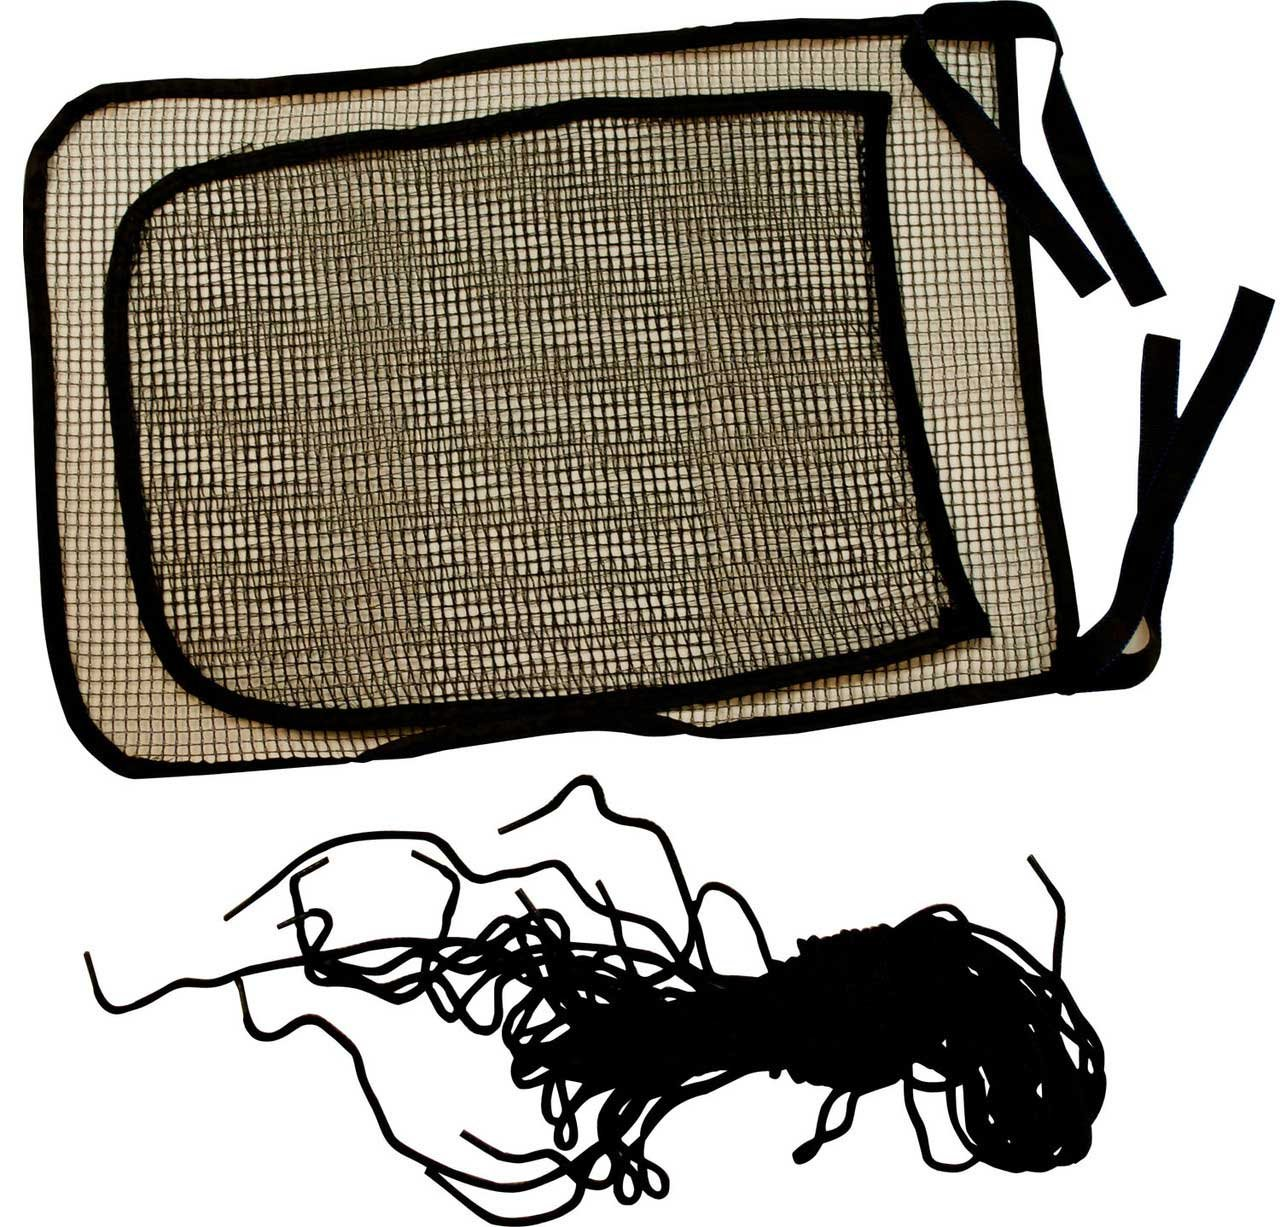 Trampoline Net for Bounce Pro/Sports Power 14' Round Frames Fits 6 Pole/Top Ring by SkyBound (Image #6)